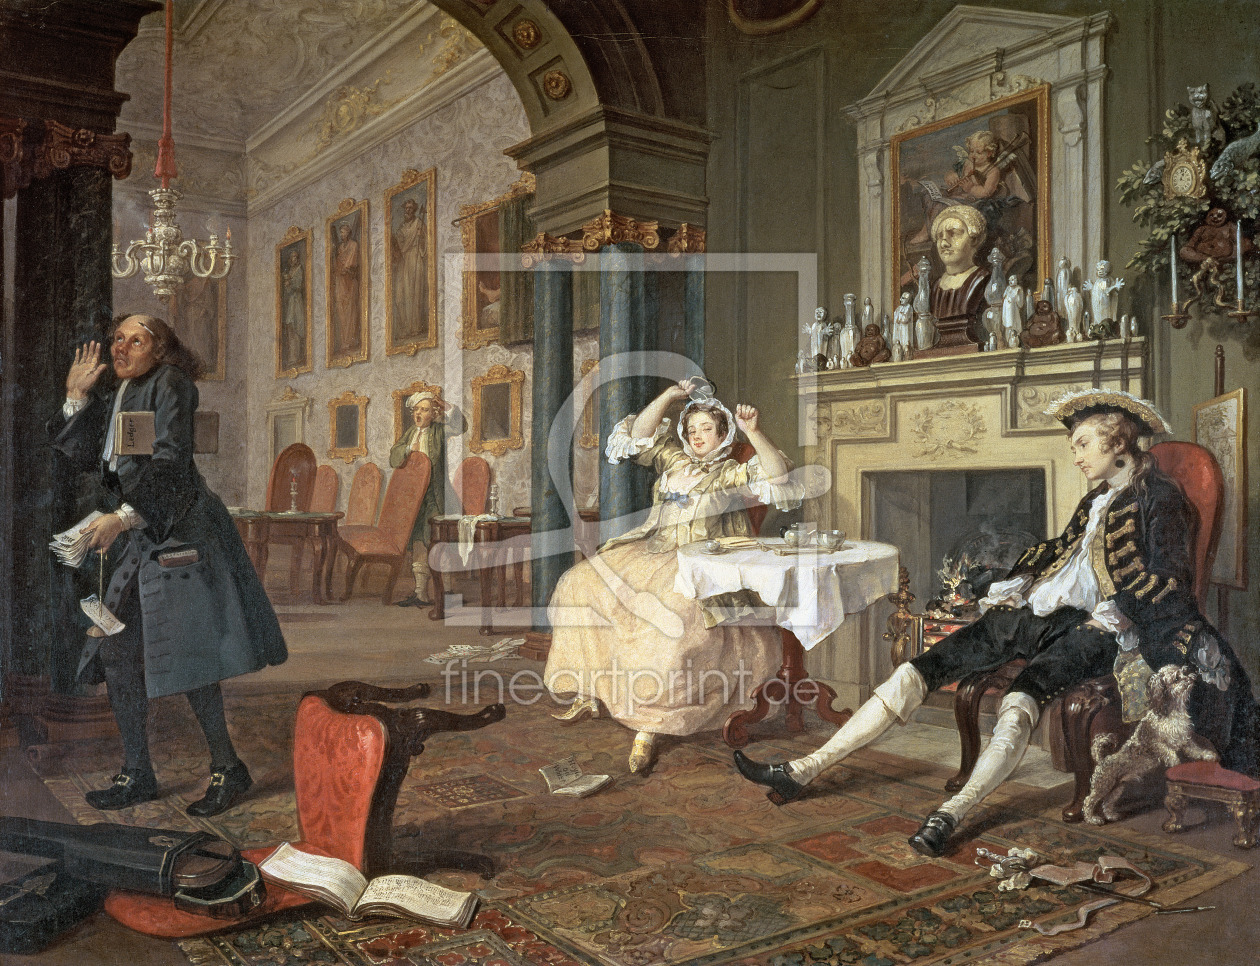 Bild-Nr.: 31000645 Marriage a la Mode: II - The Tete a Tete, c.1743 erstellt von Hogarth, William